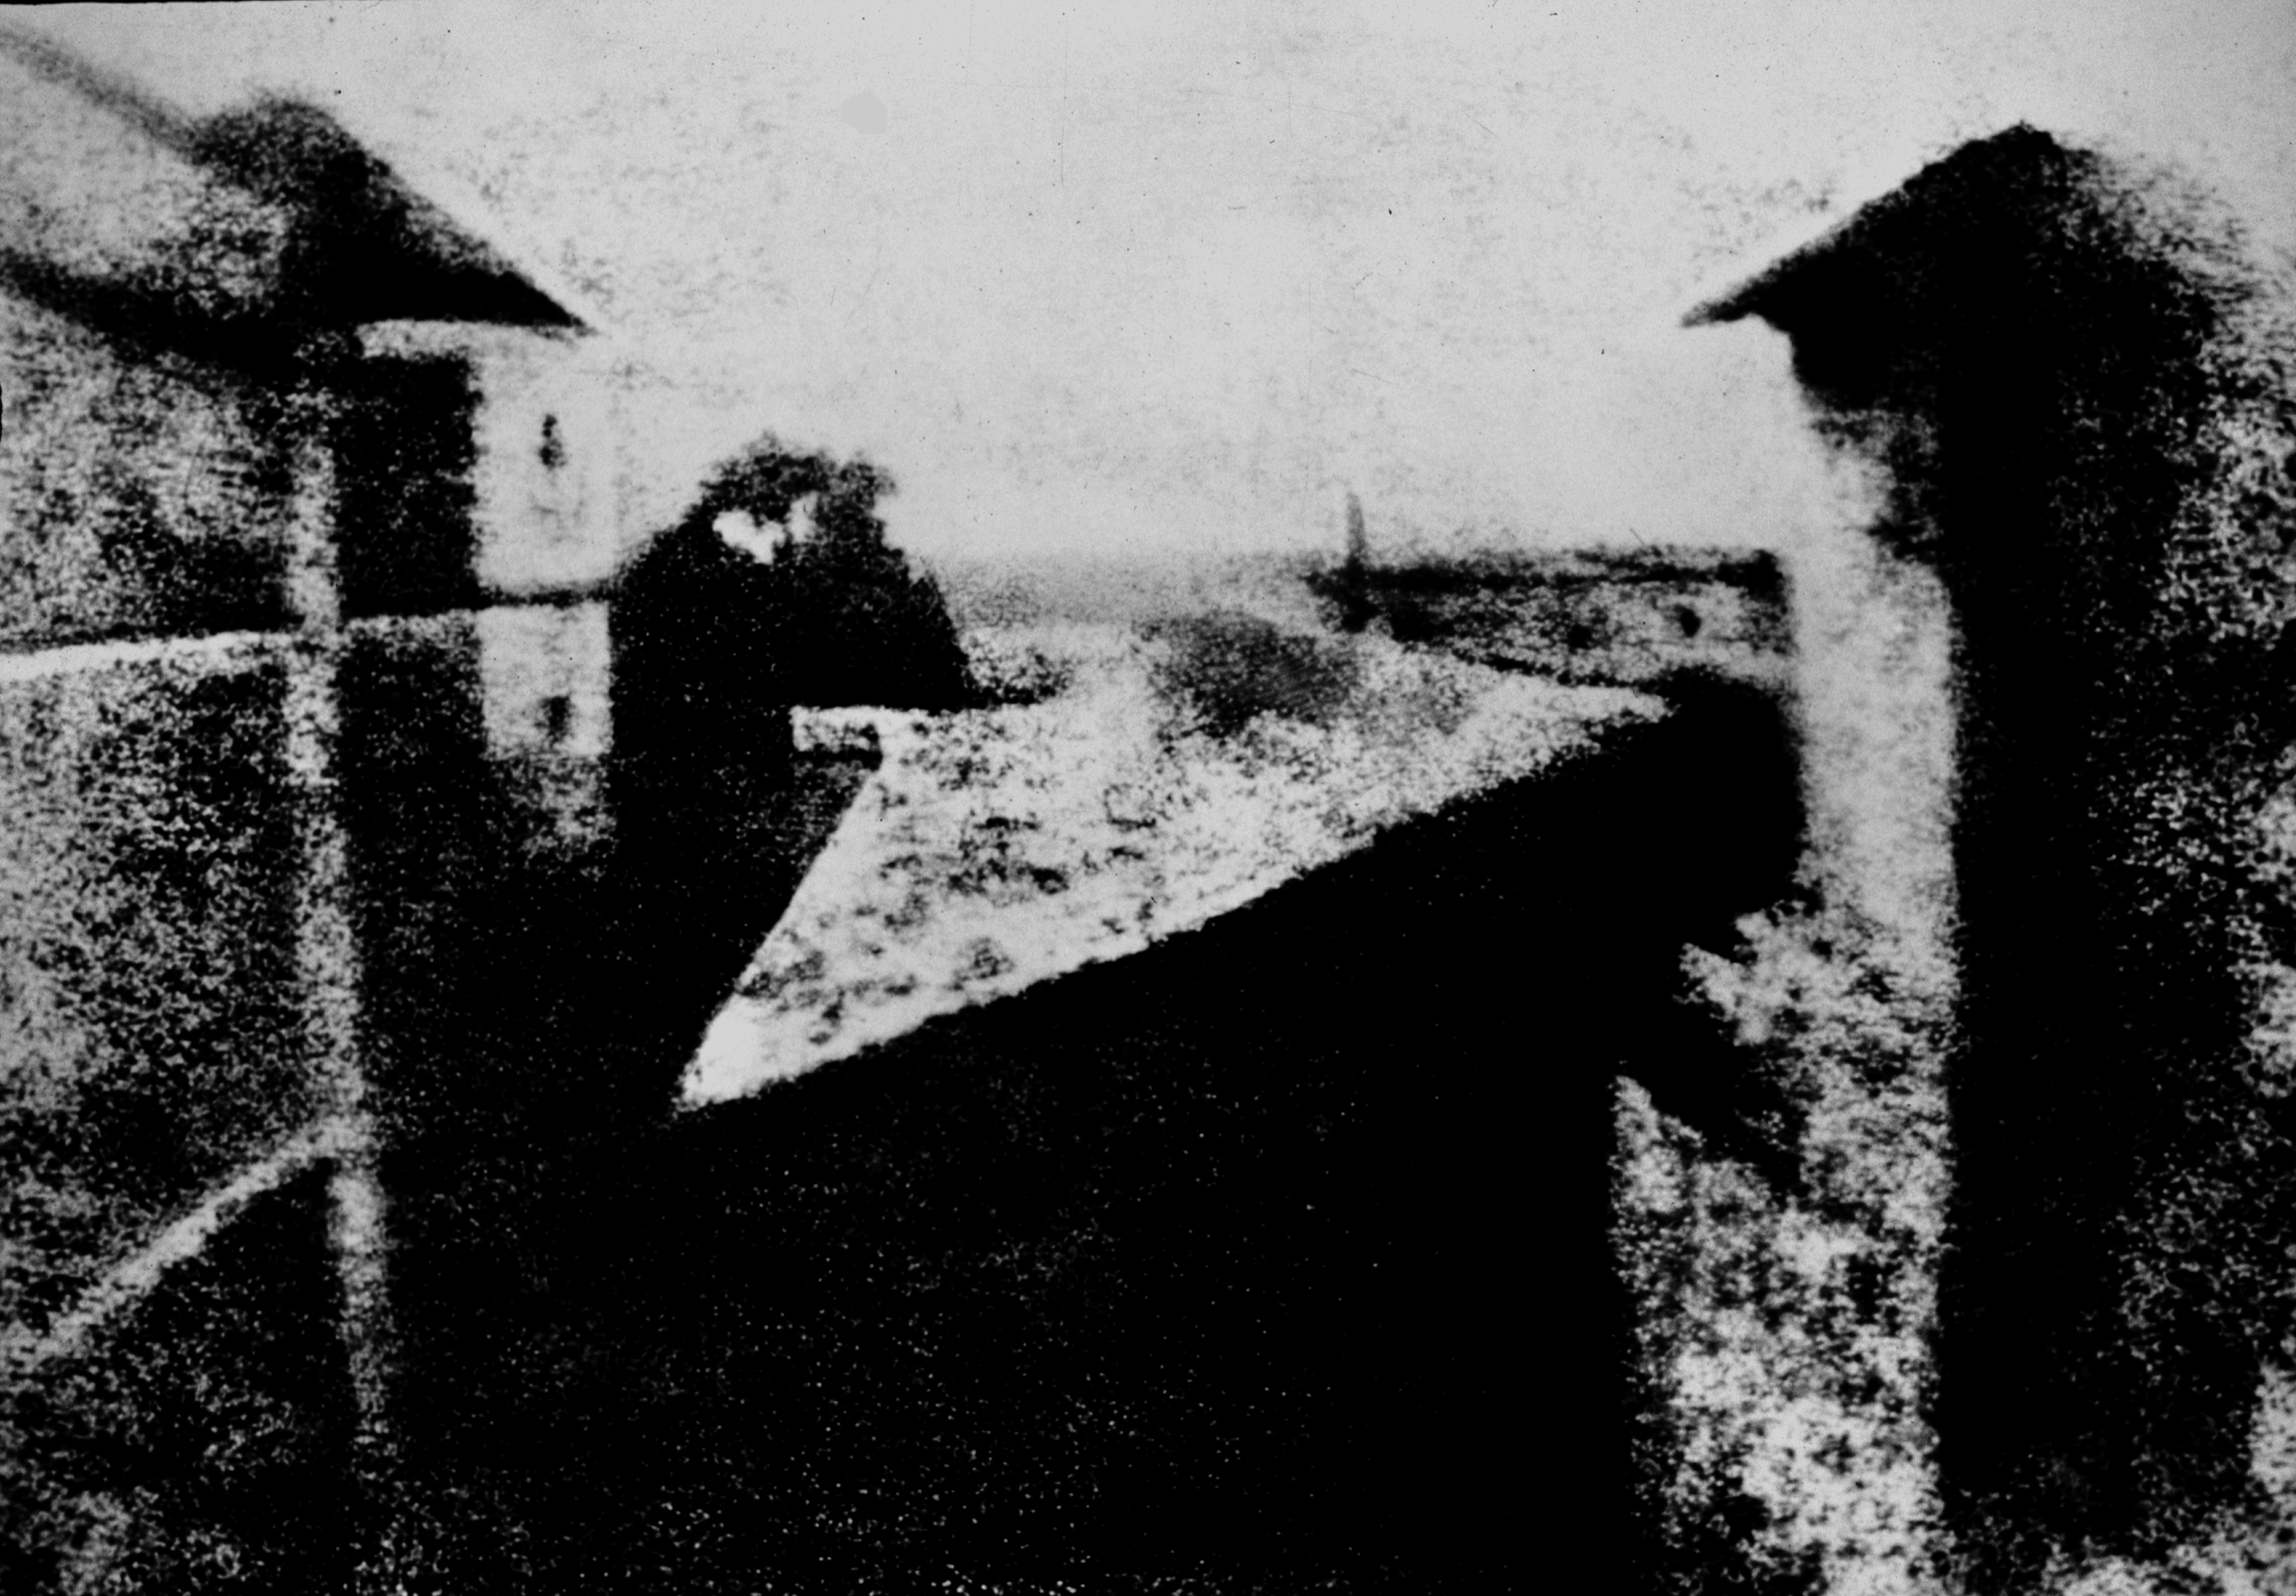 View from the Window at Le Gras, (1826 or 1827) by Joseph Nicéphore Niépce